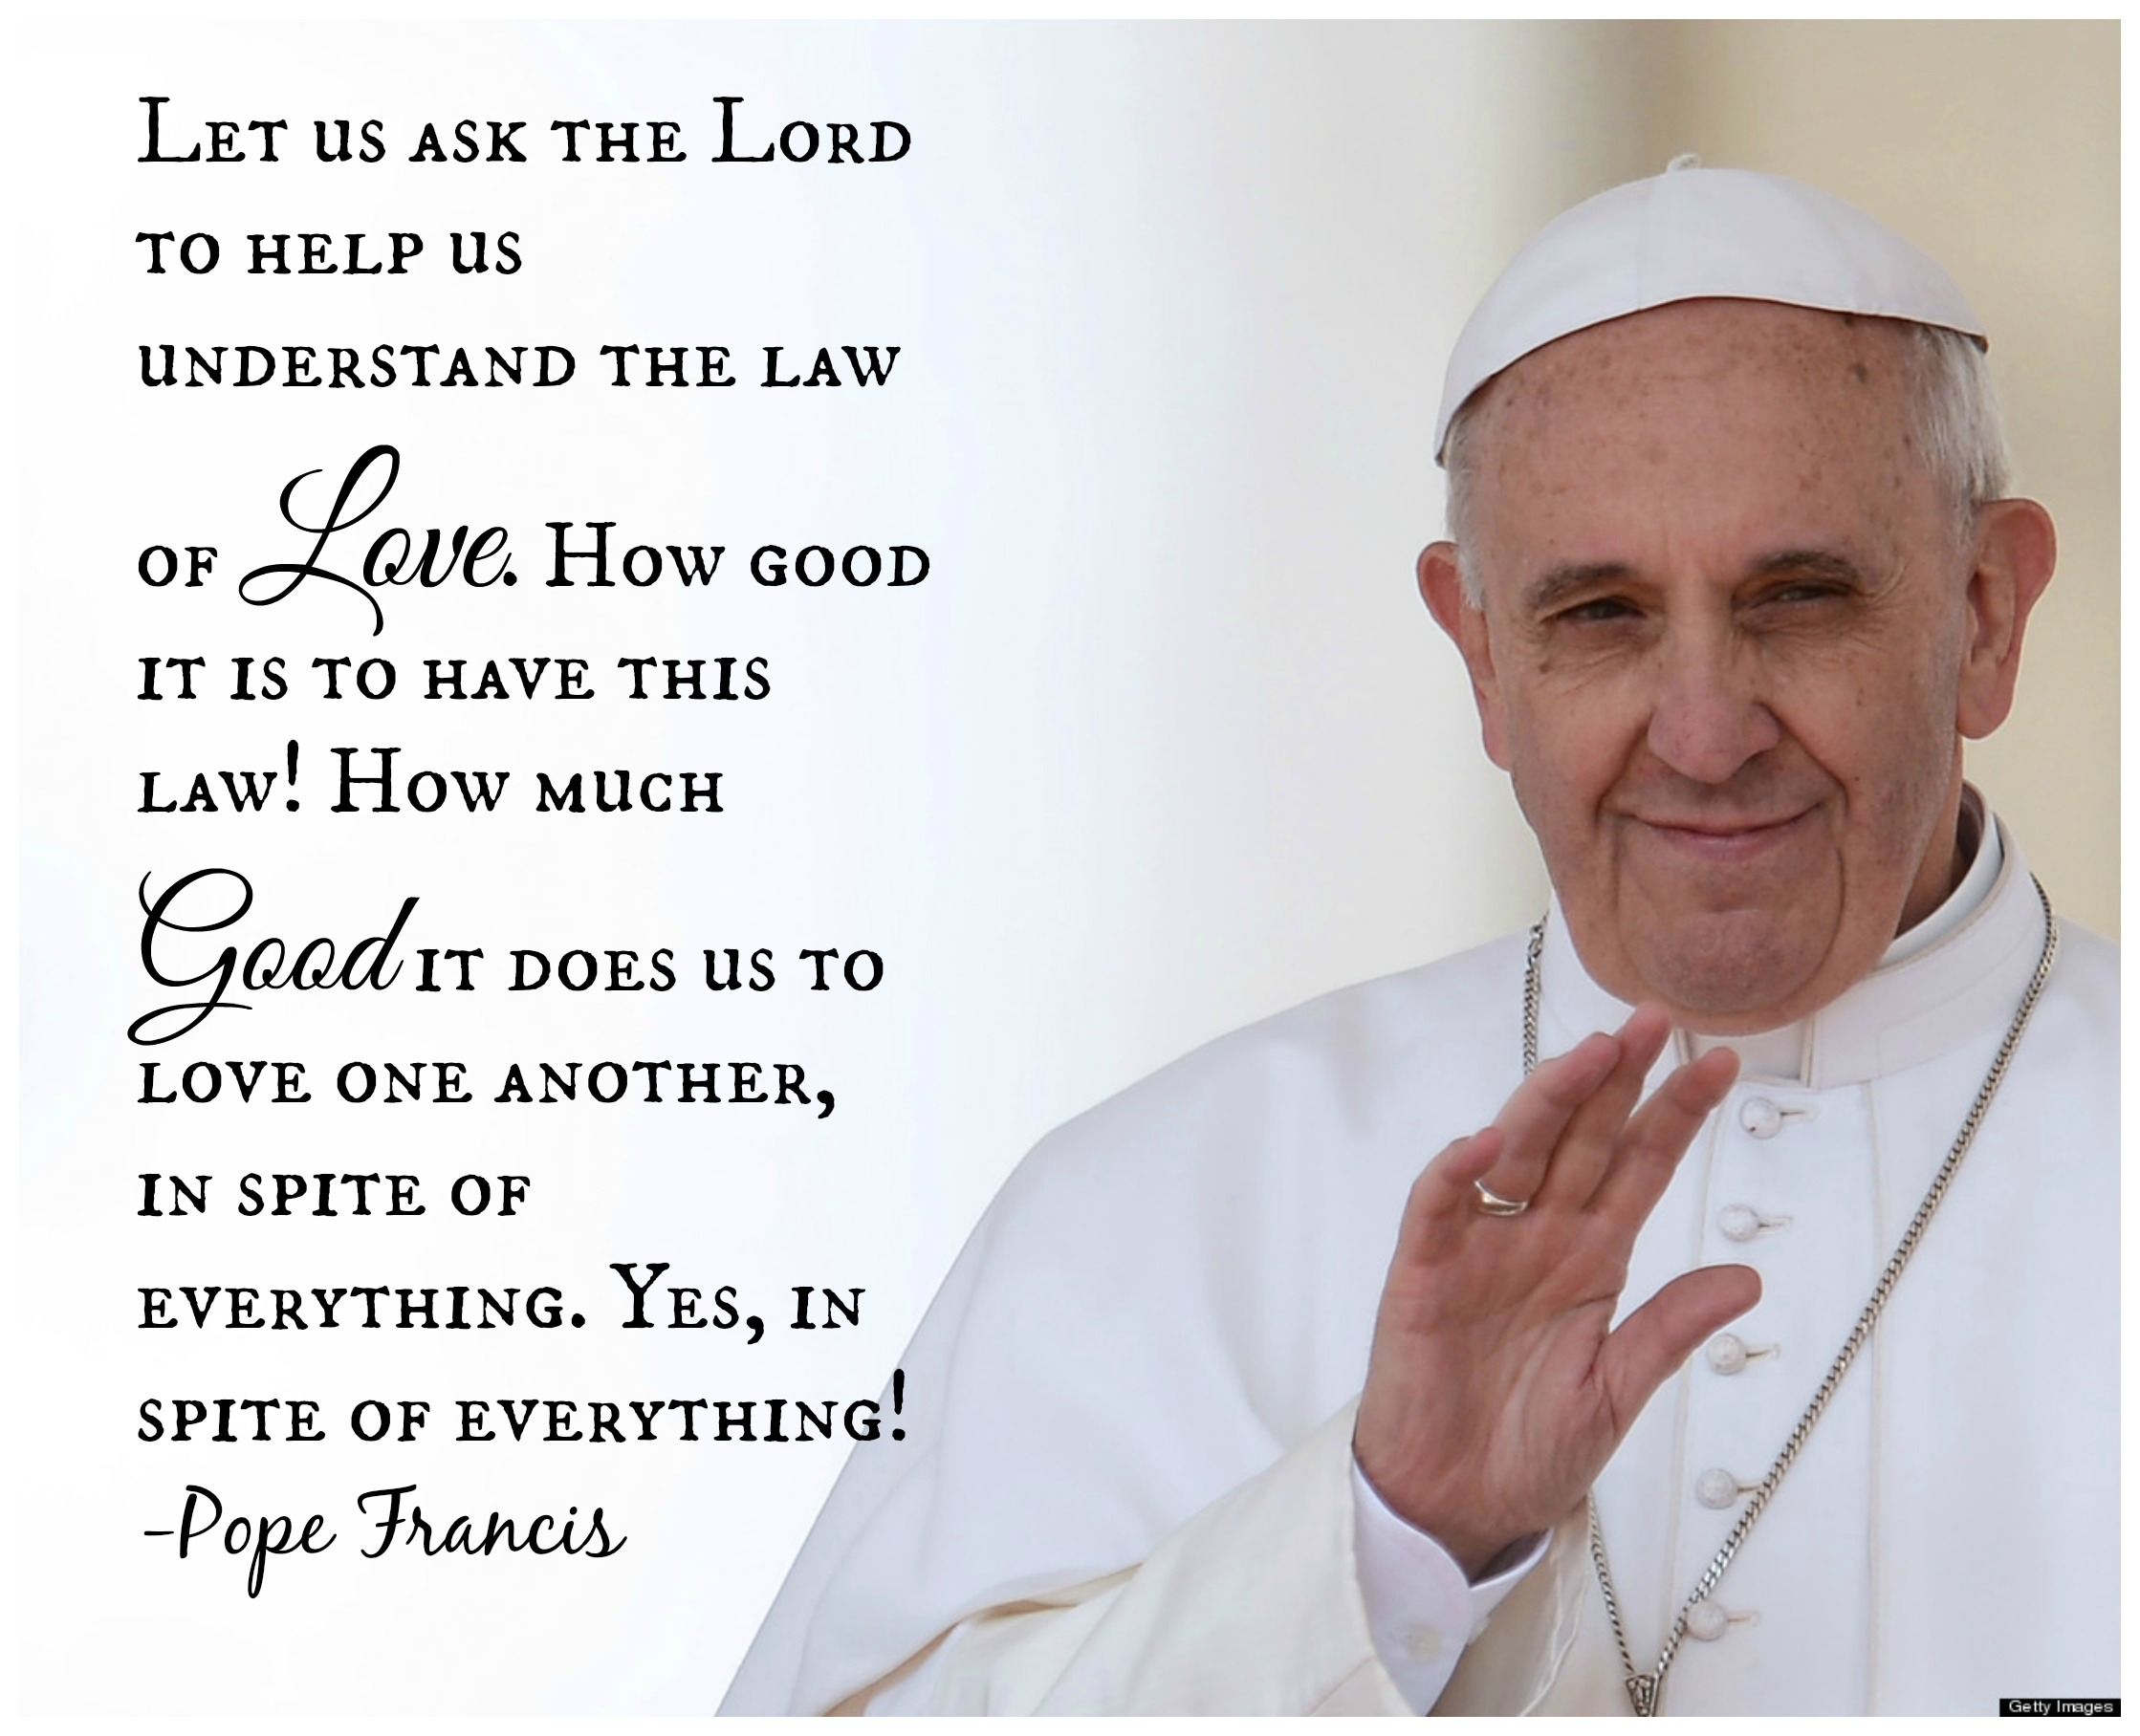 Quotes From The Pope: Quotes About Pope Francis Lent. QuotesGram